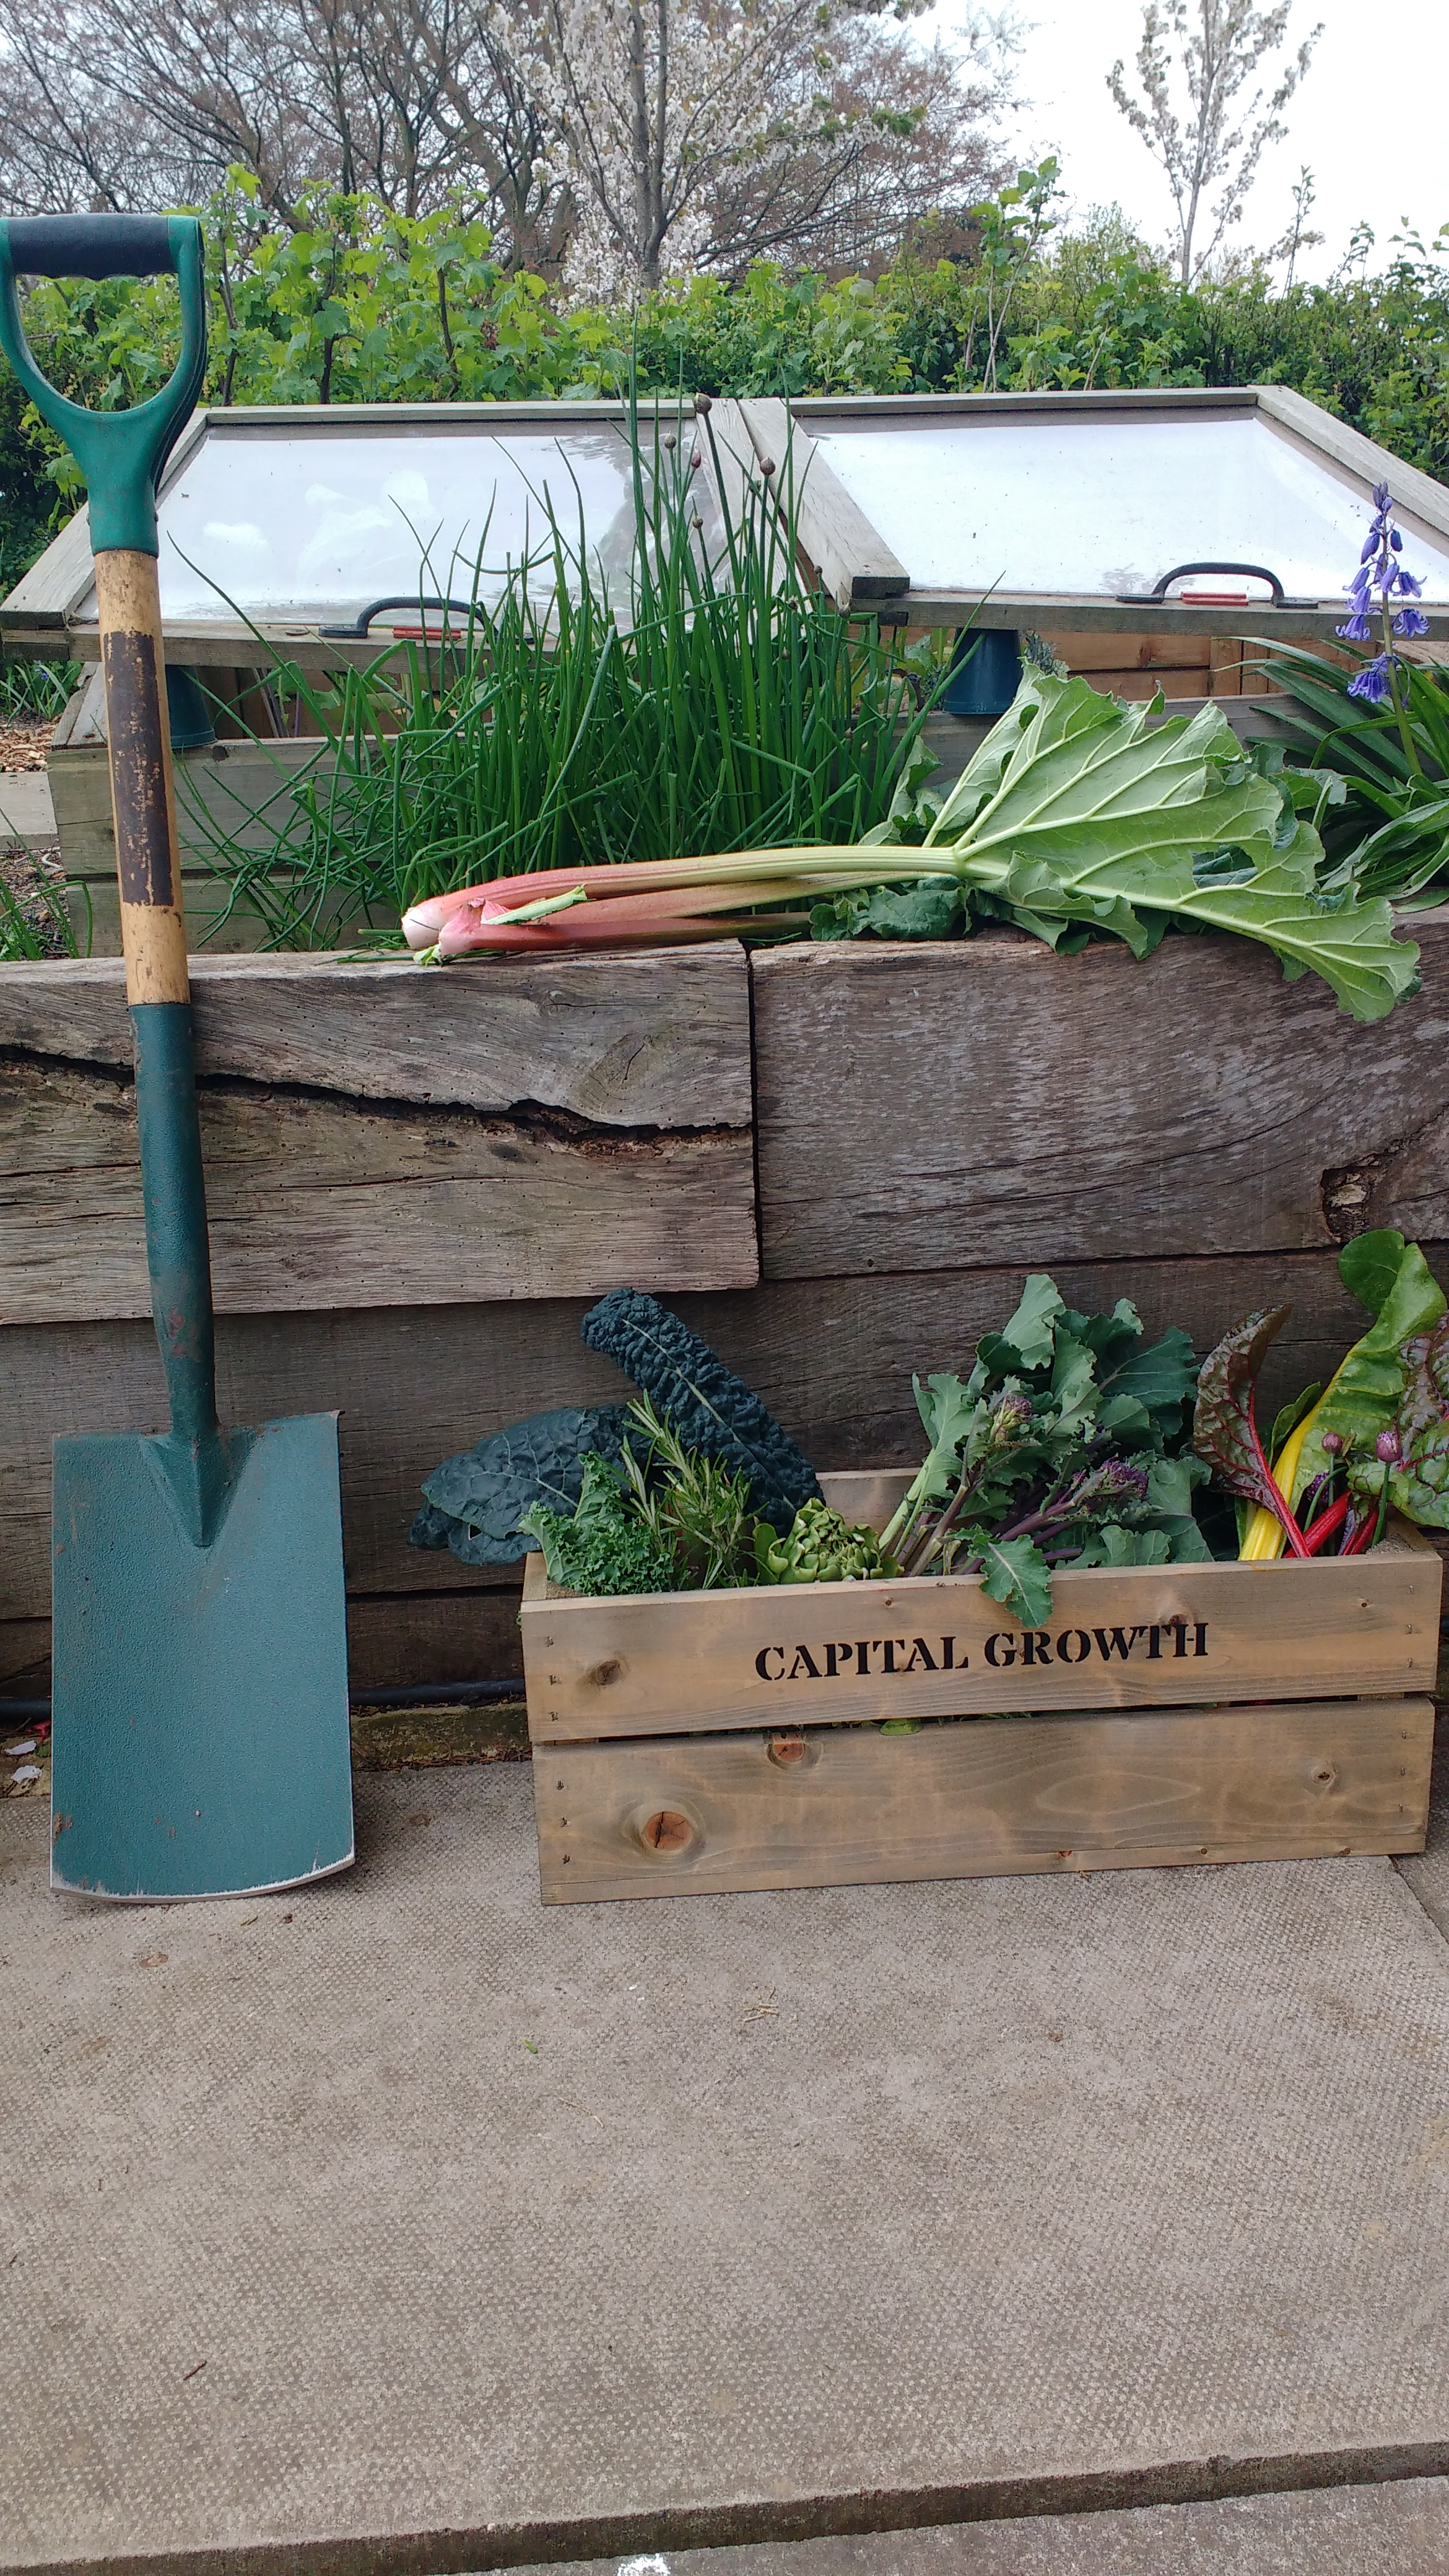 An Interview with Capital Growth - London's Food Growing Network